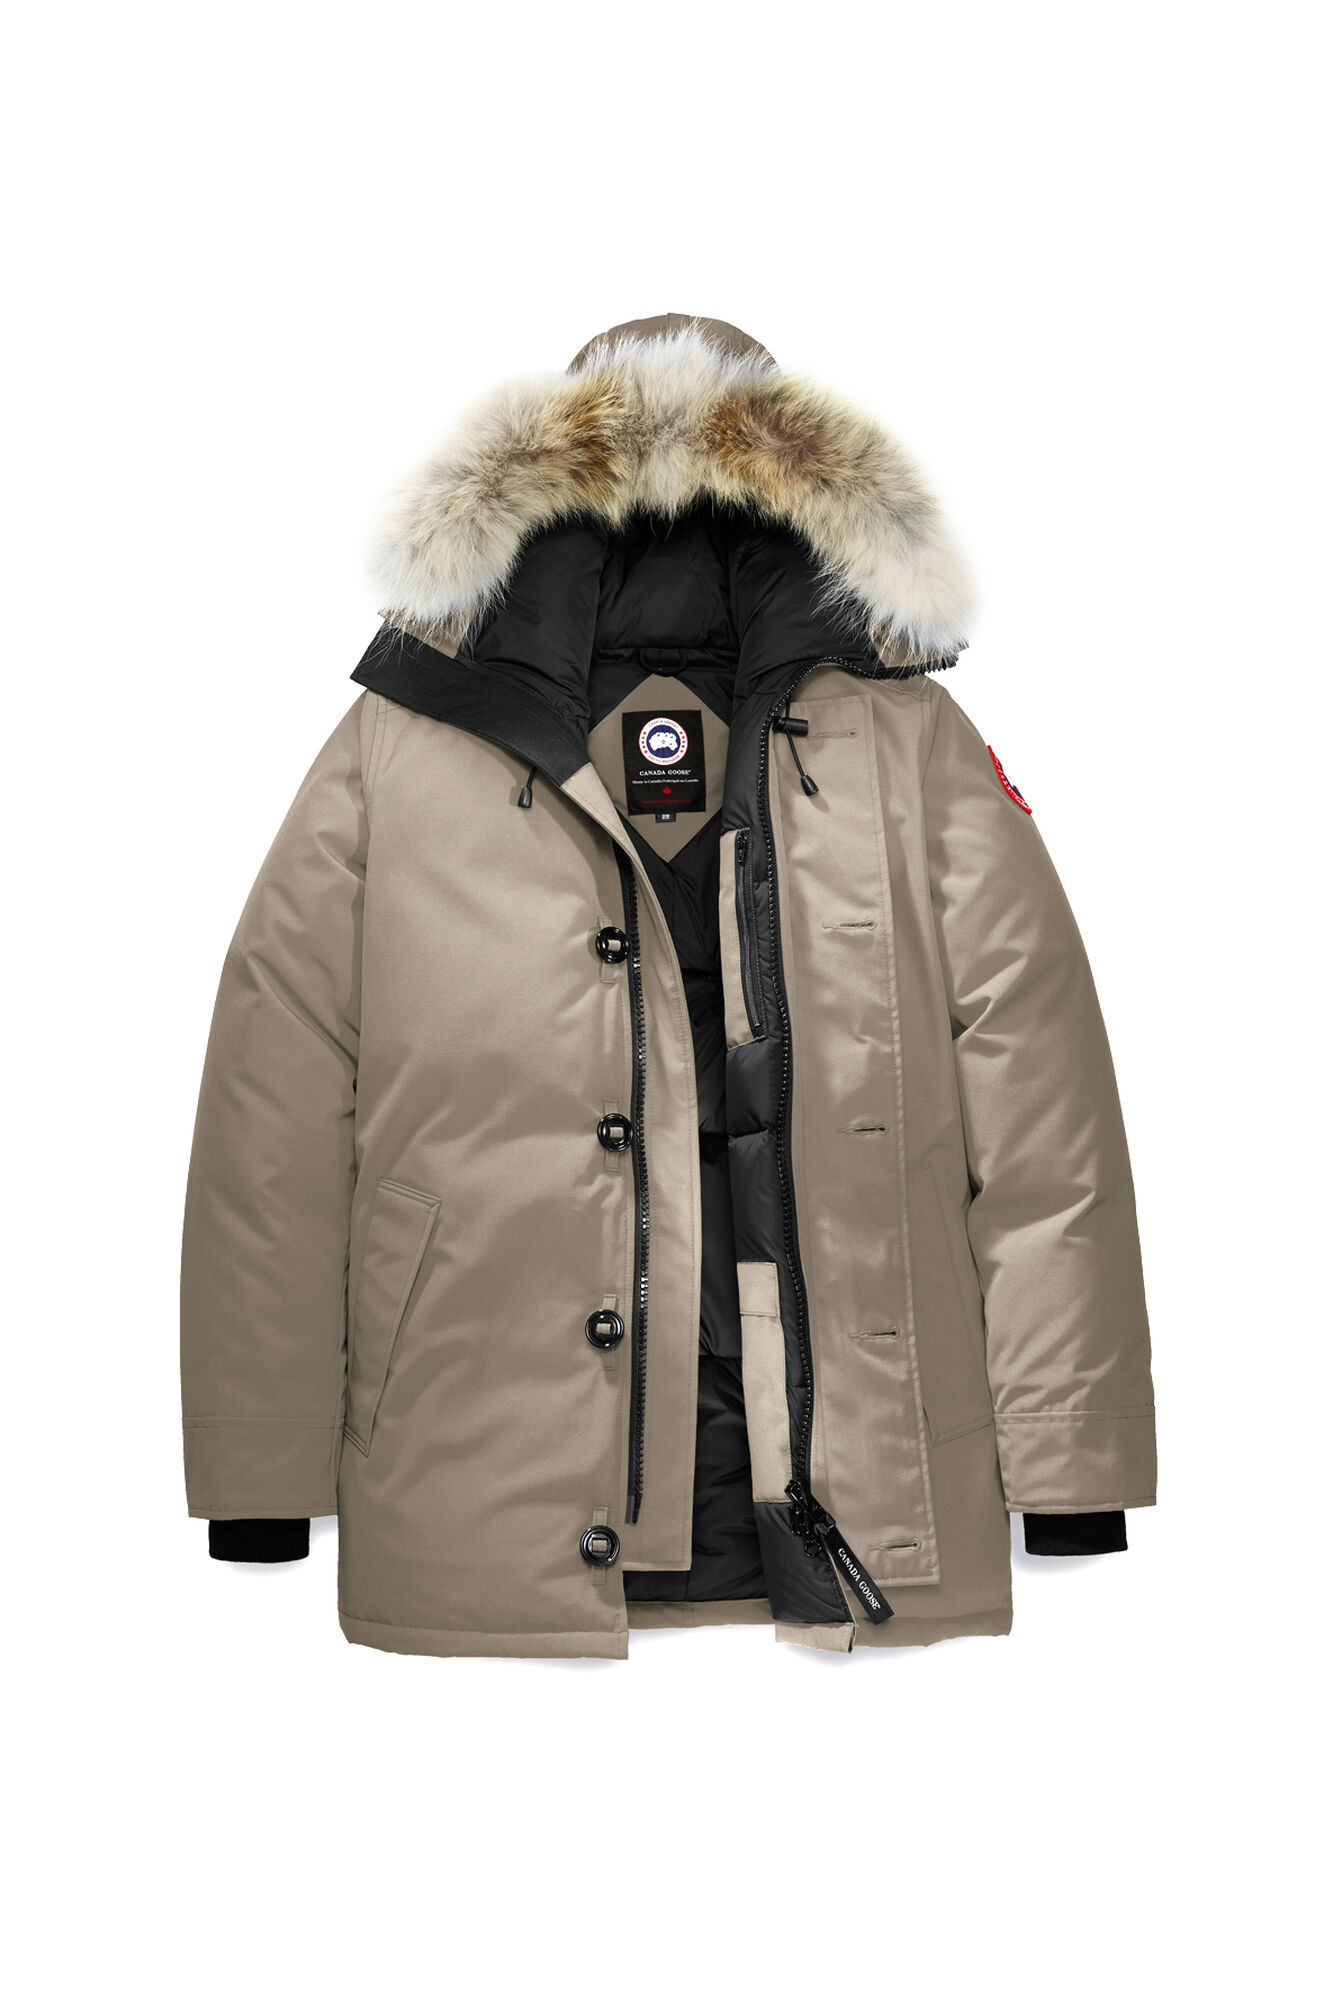 Canada Goose kids online price - Men's Arctic Program Chateau Parka | Canada Goose?